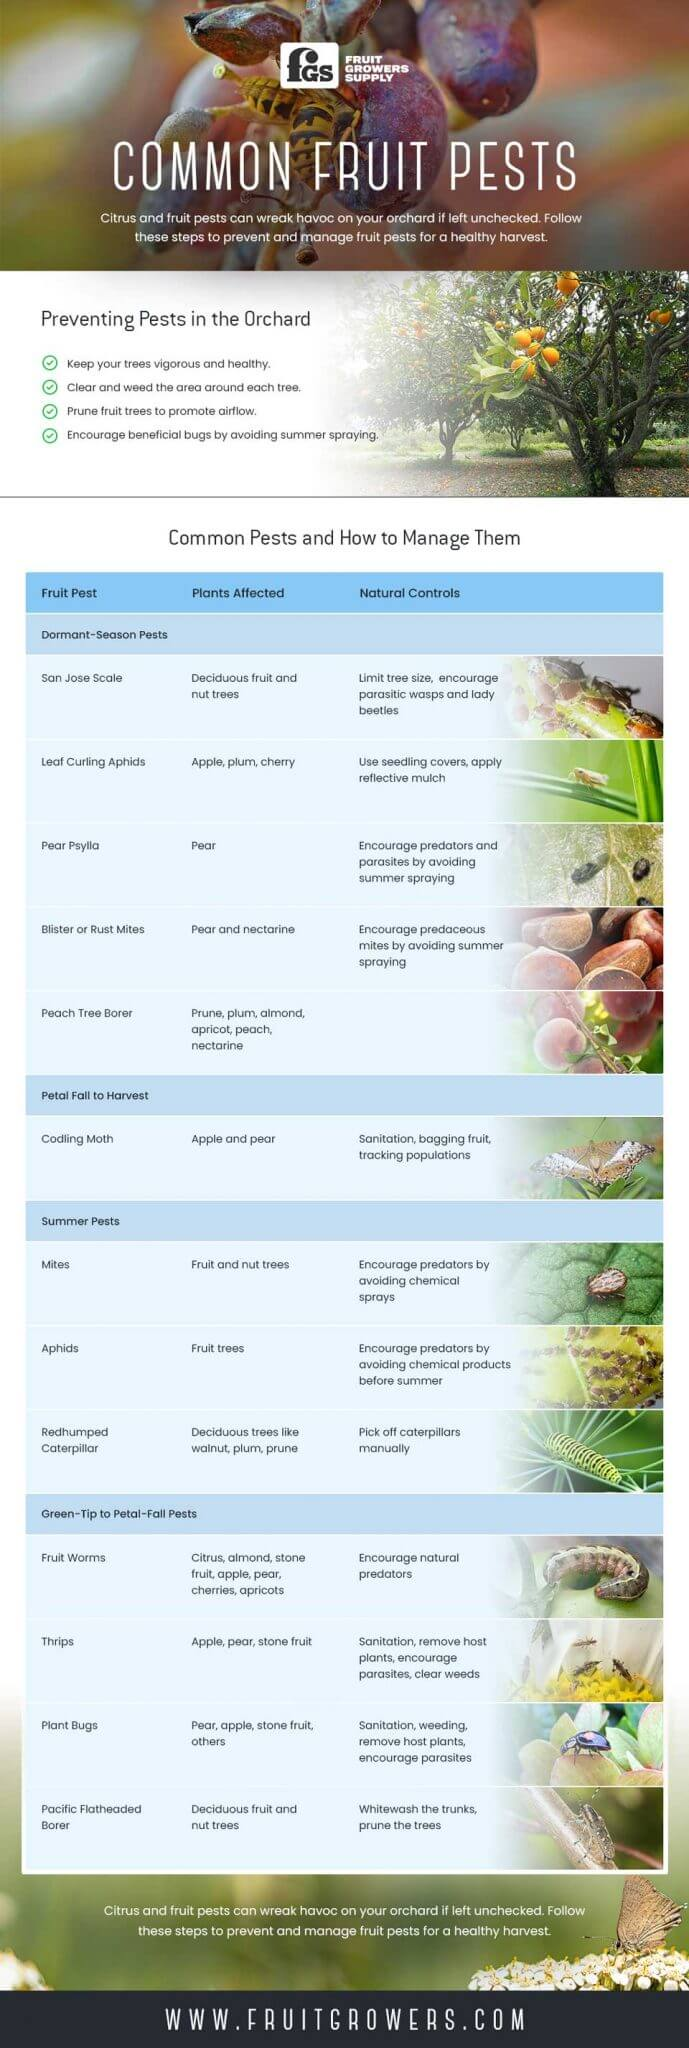 The Most Common Fruit Pests, And How To Handle Them - Infographic